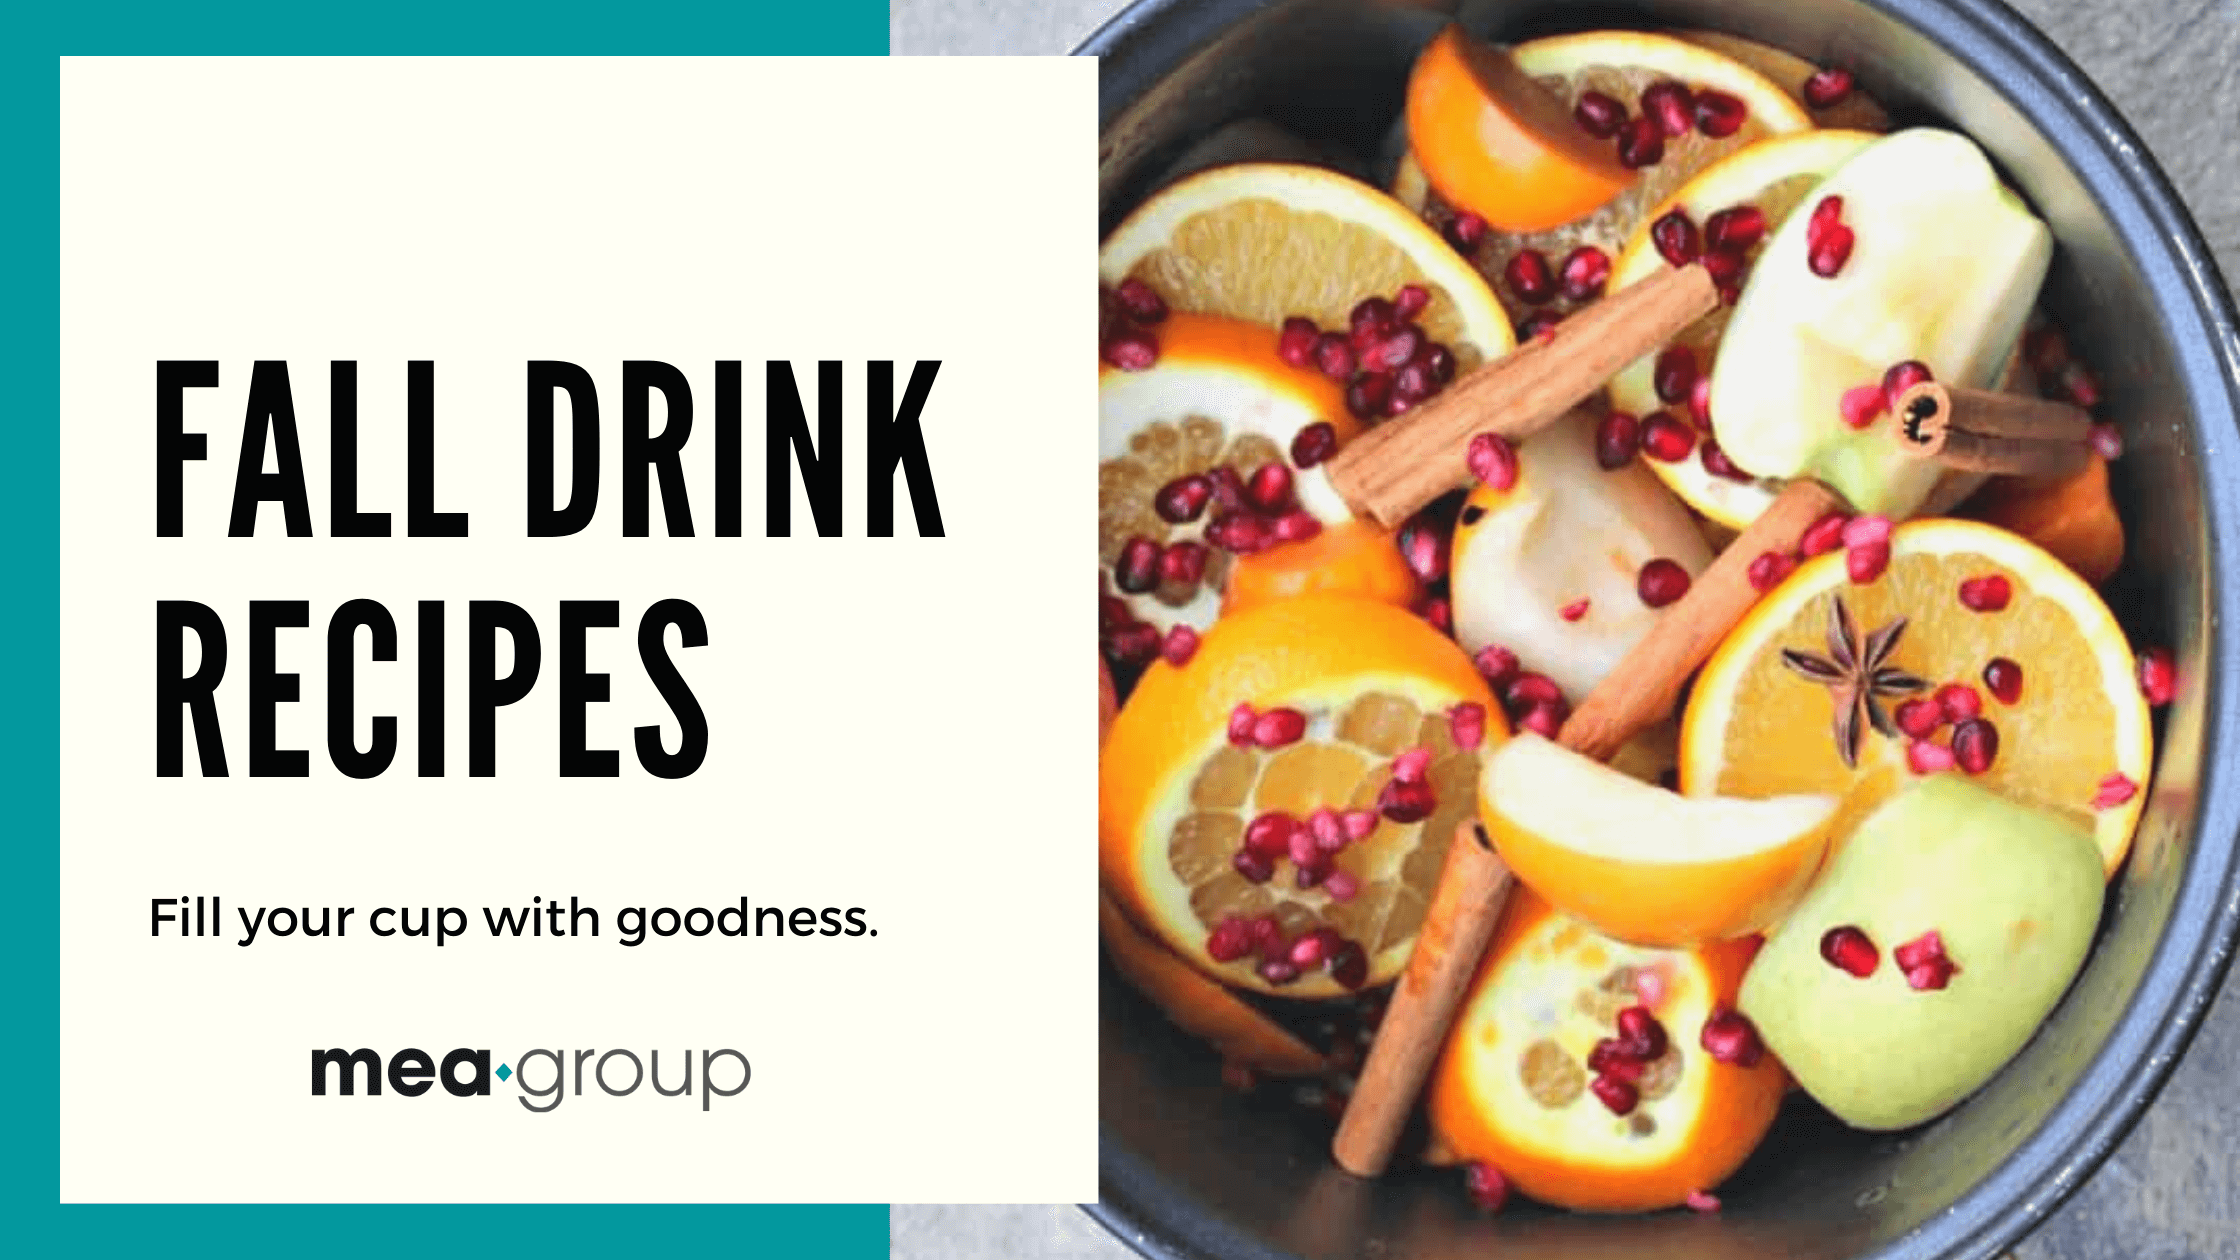 FALL DRINK RECIPES & COOL BRANDED MUGS